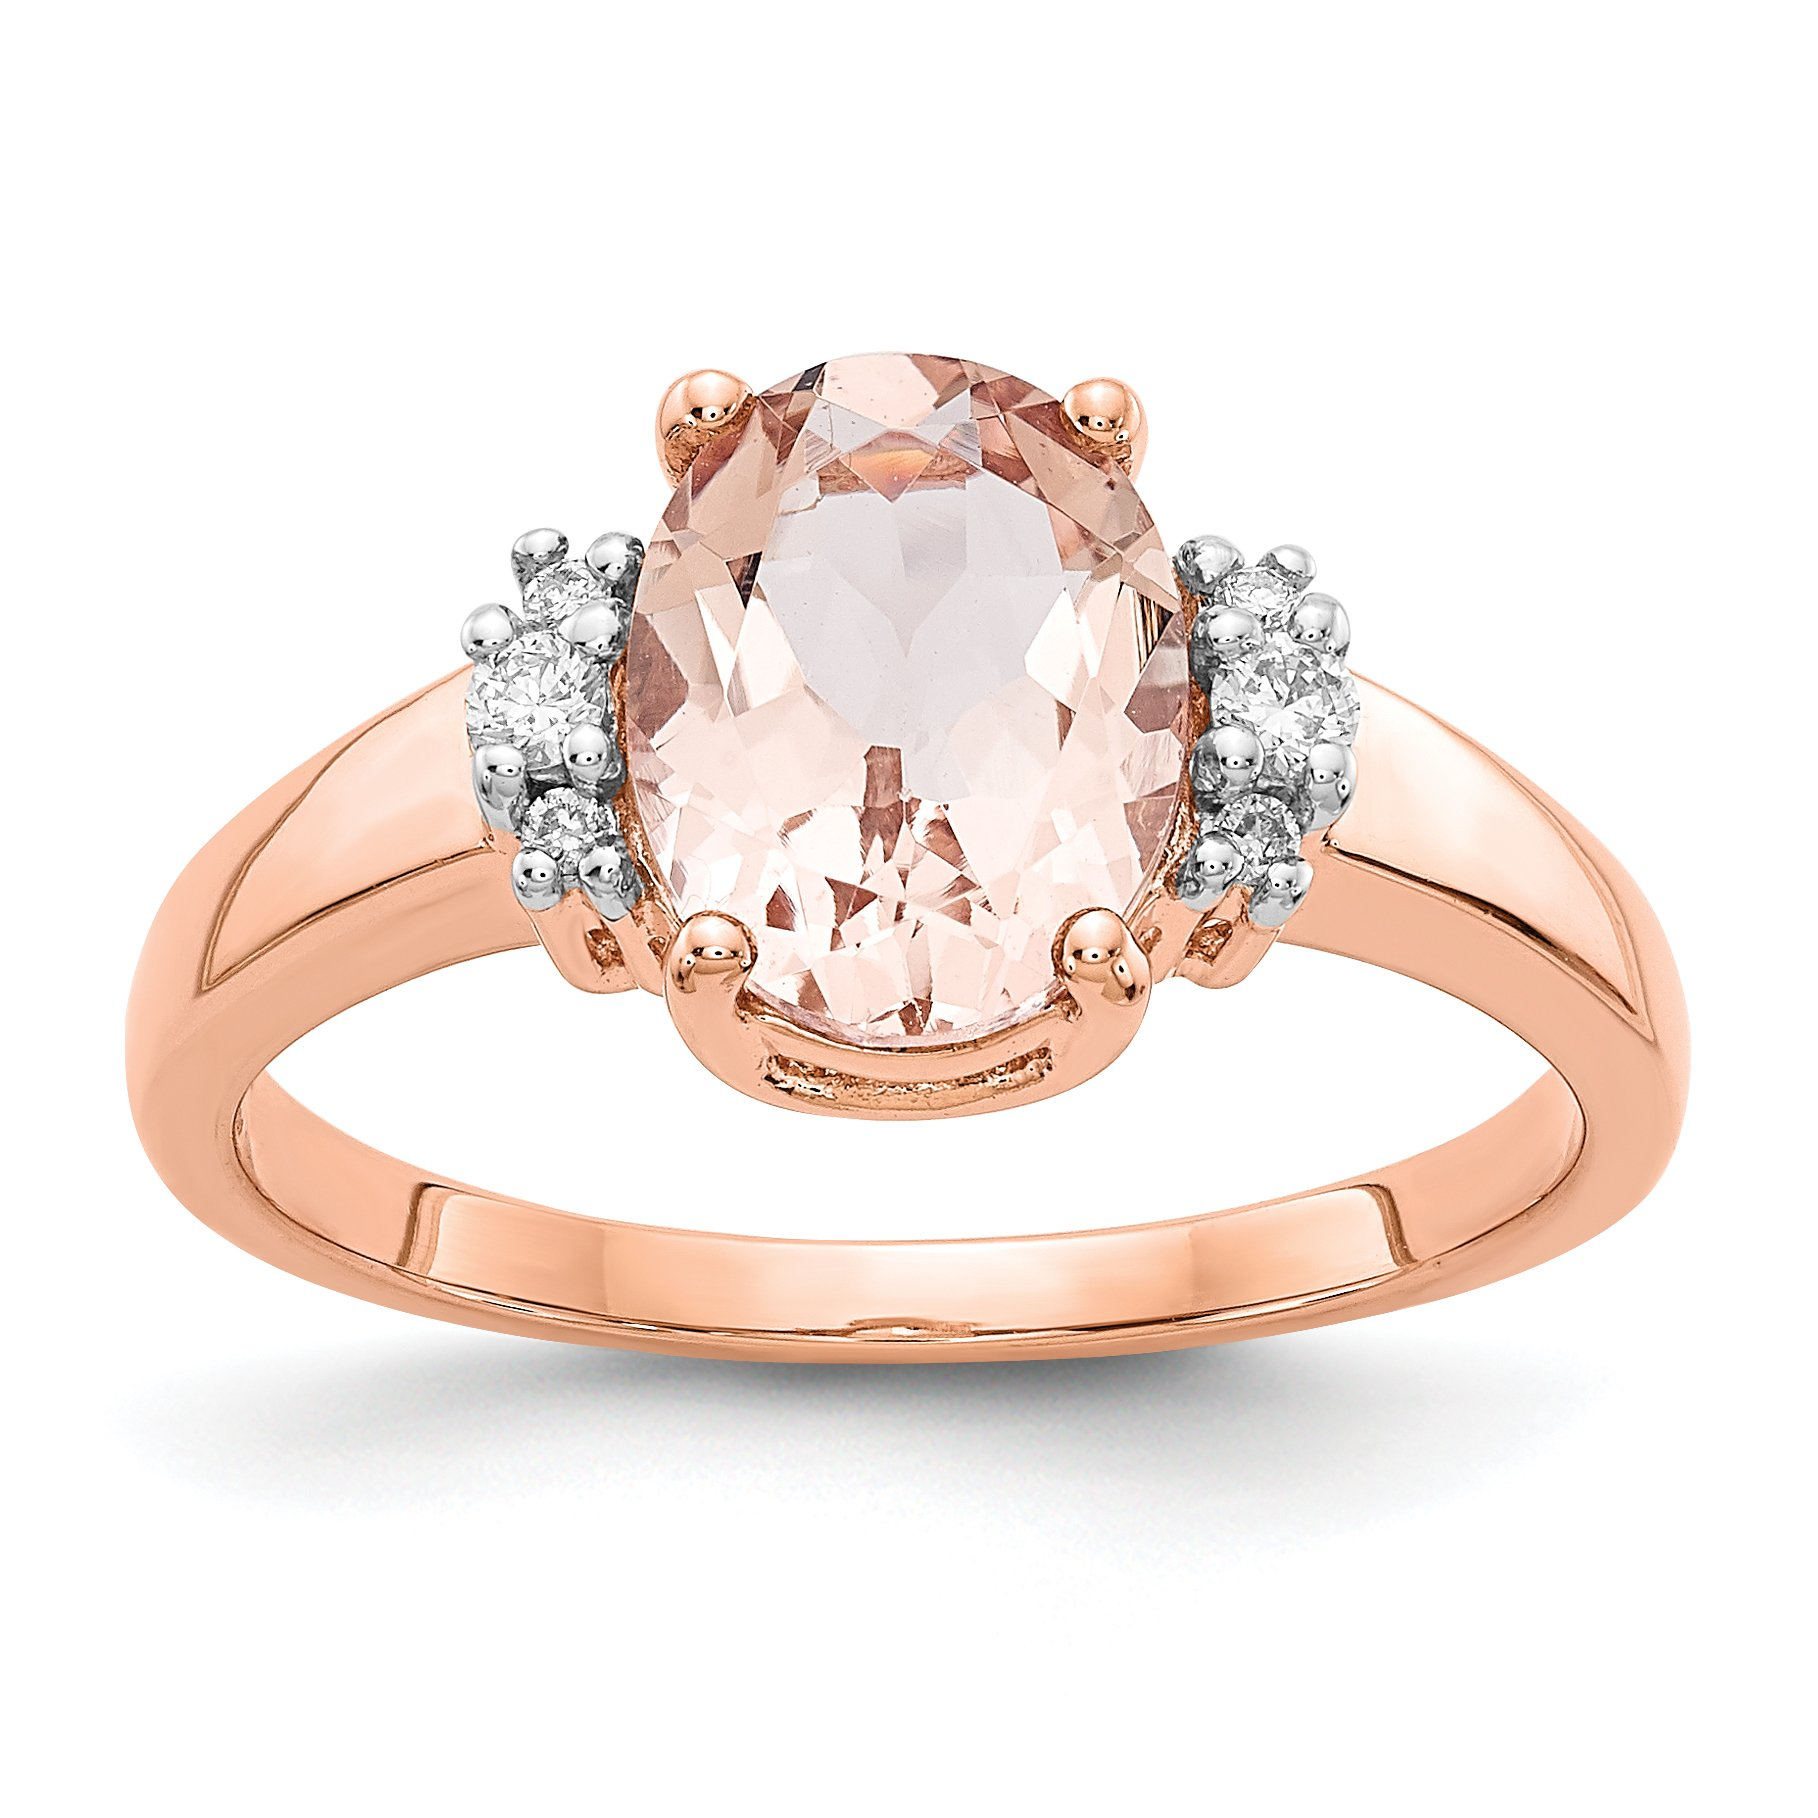 ICE CARATS 14k Rose Gold Pink Morganite Diamond Band Ring Size 7.00 Fine Jewelry Gift Set For Women Heart by ICE CARATS (Image #1)